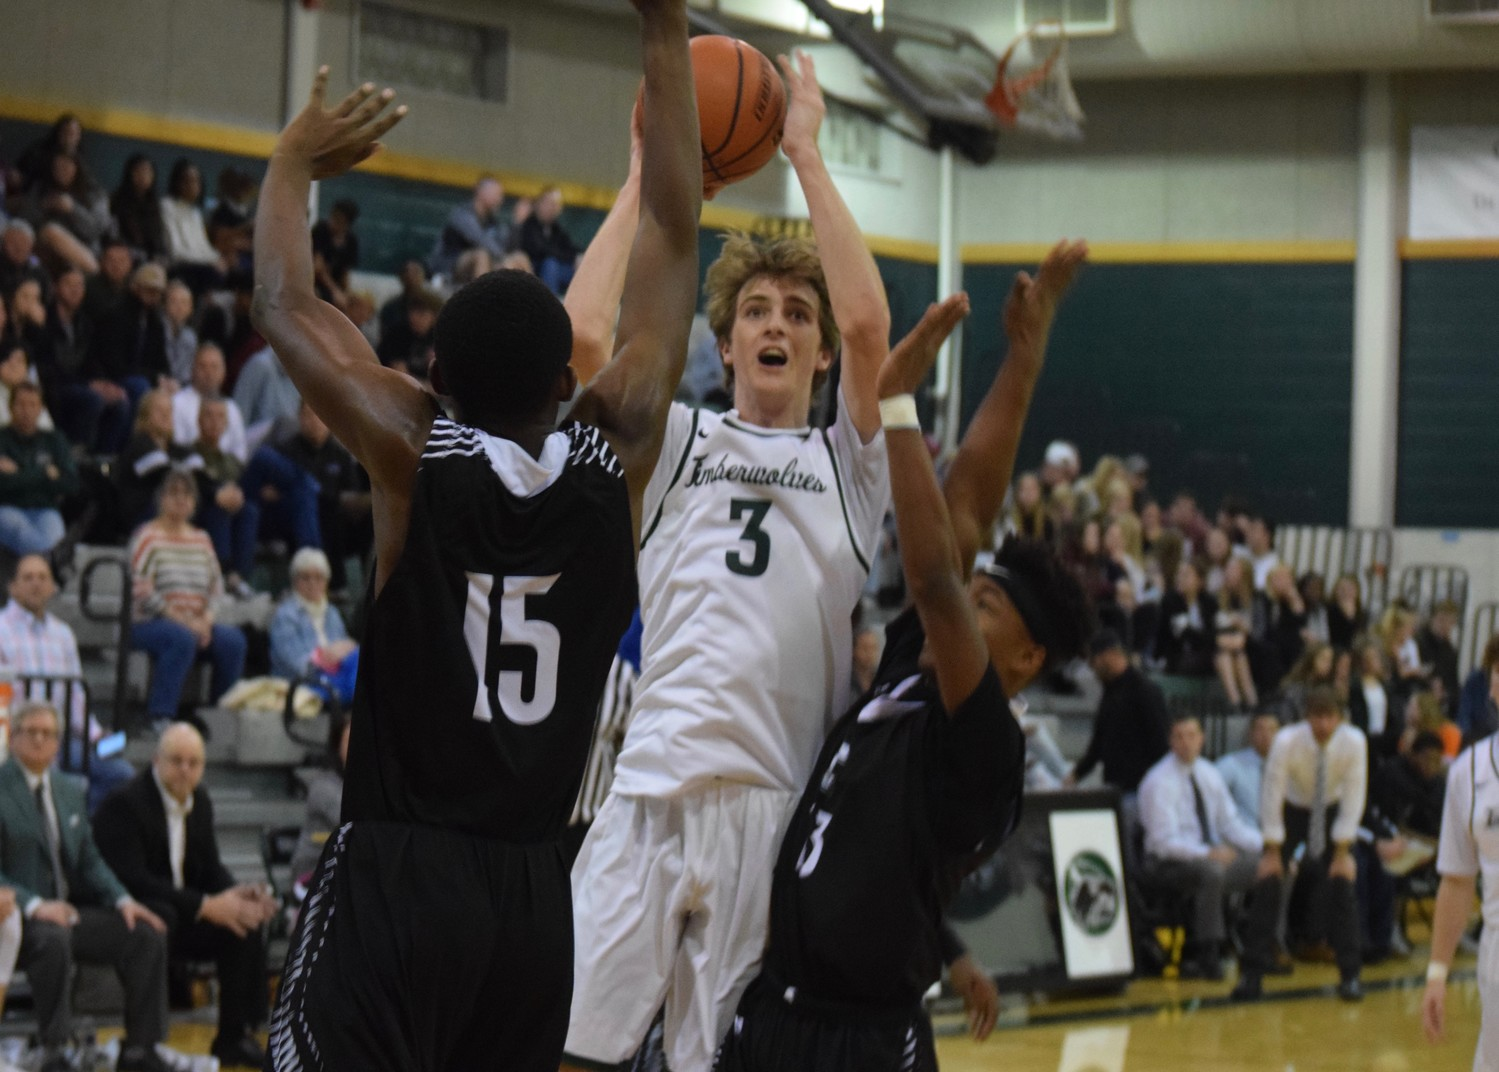 Eric Weeks scored seven points and Cedar Park beat Connally 52-51 on Friday night.